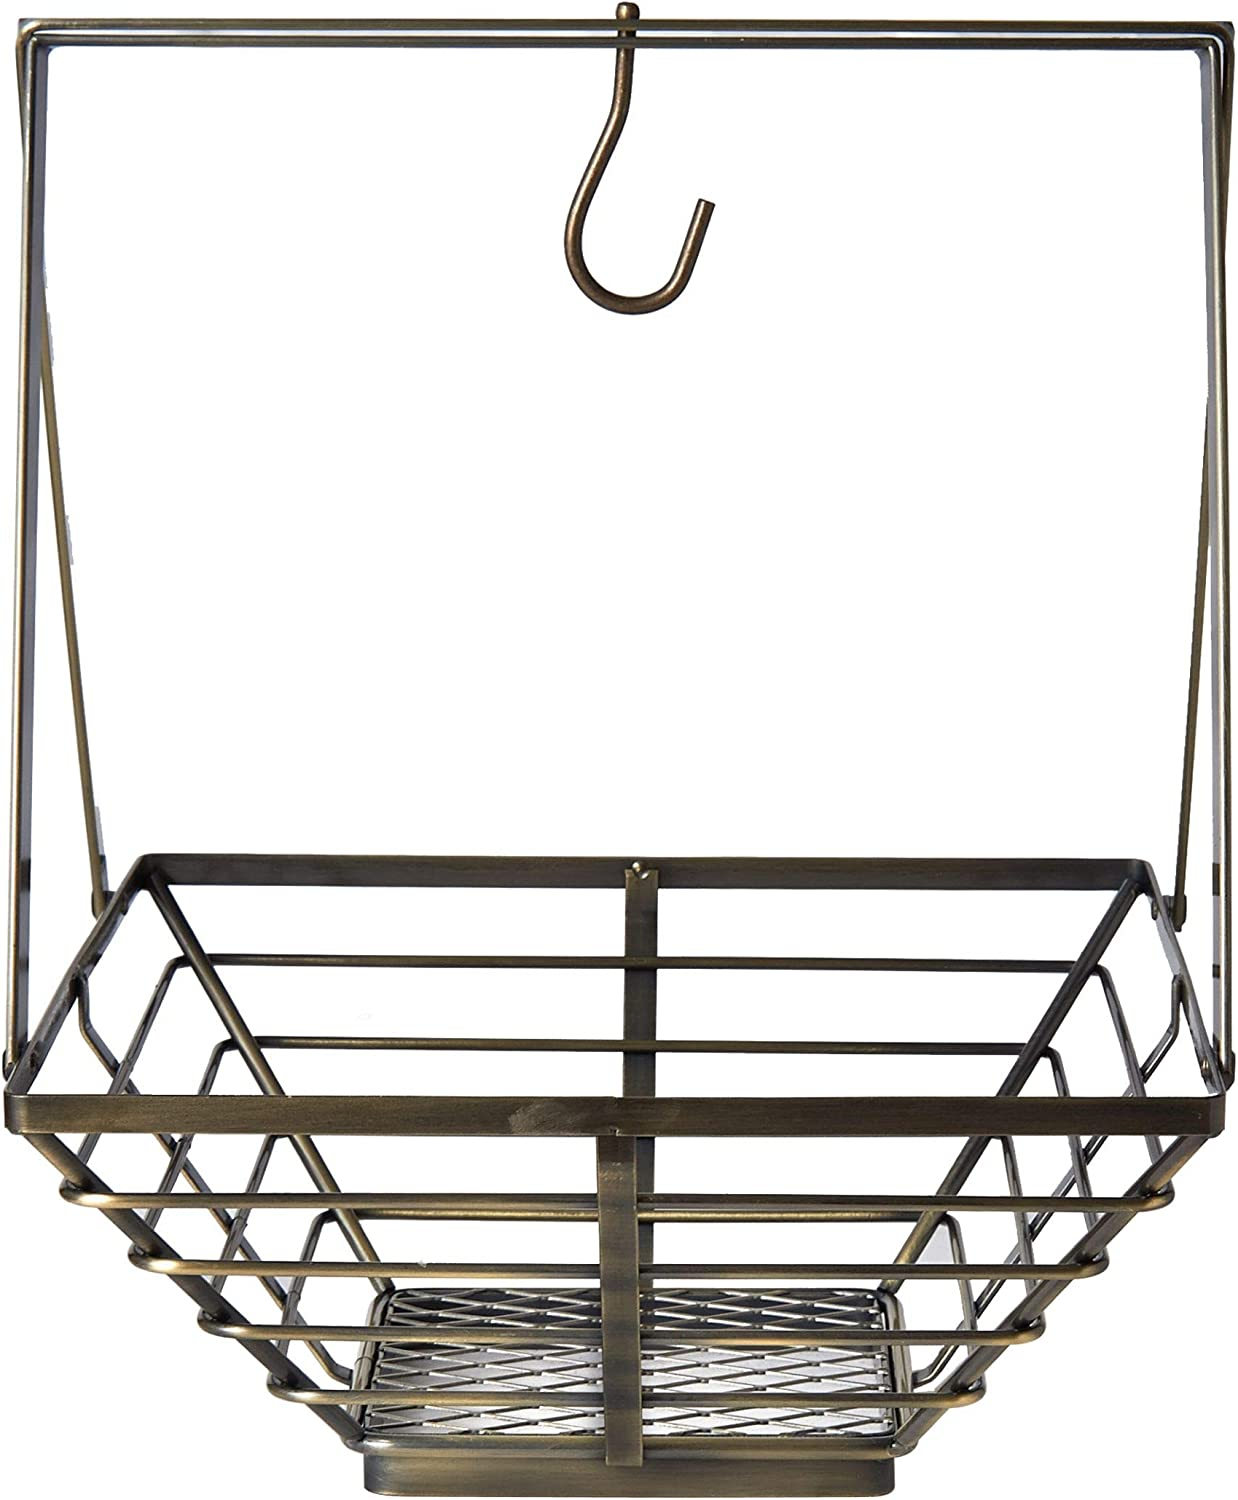 Gourmet Basics by Mikasa Rustic Basket with Banana Hook, One Size, Brass